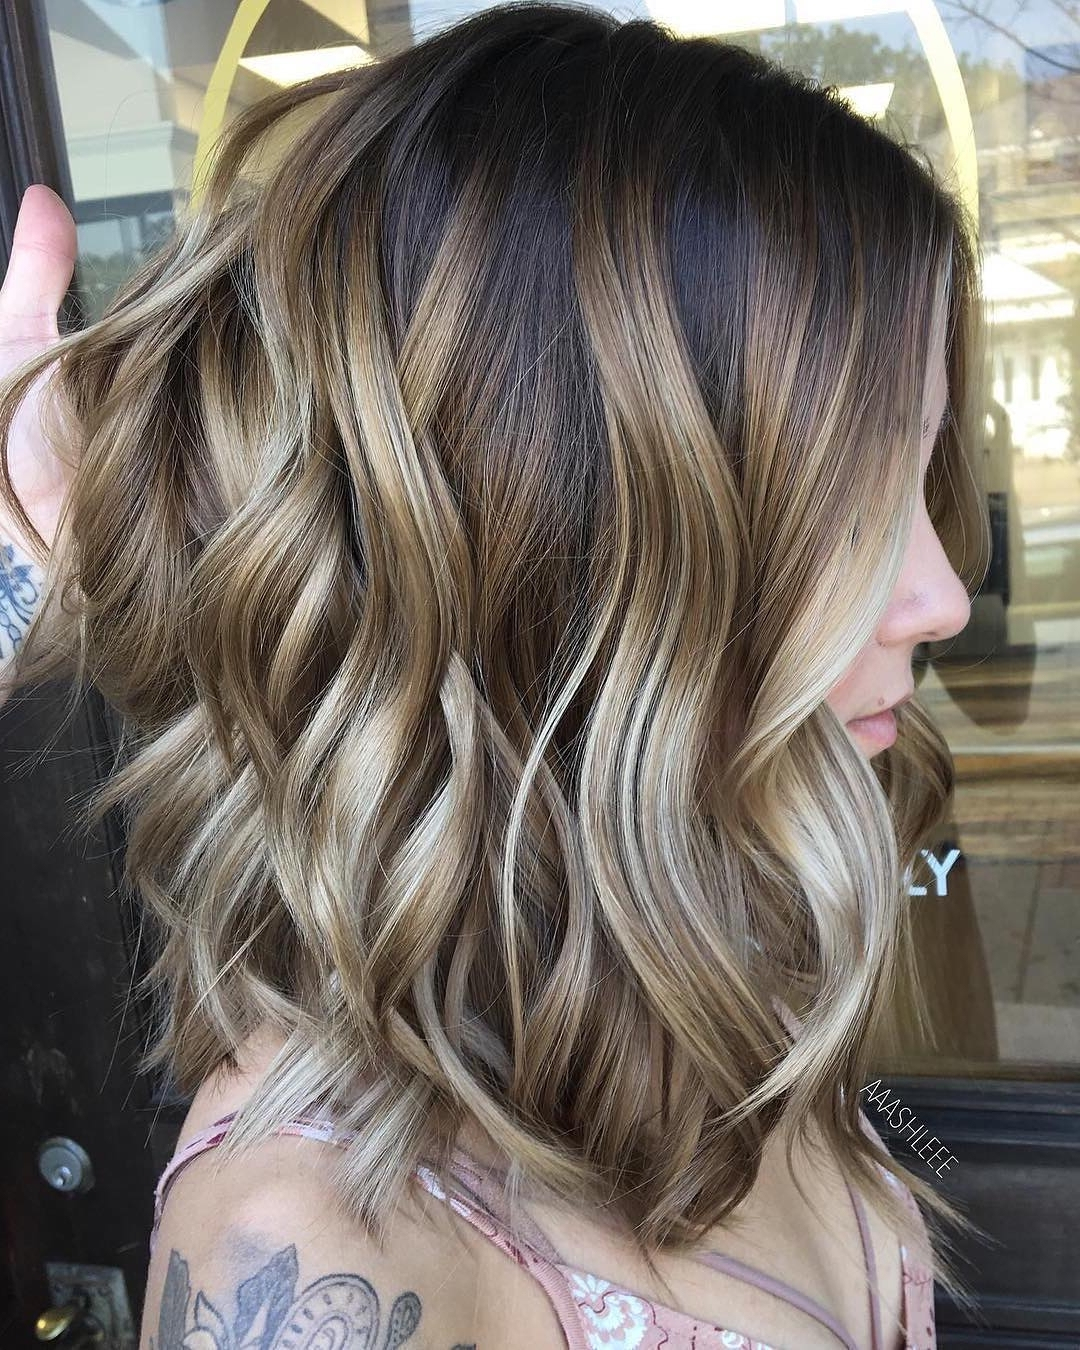 10 Ombre Balayage Hairstyles For Medium Length Hair, Hair Color 2018 Throughout Most Popular Balayage Blonde Hairstyles With Layered Ends (View 1 of 20)